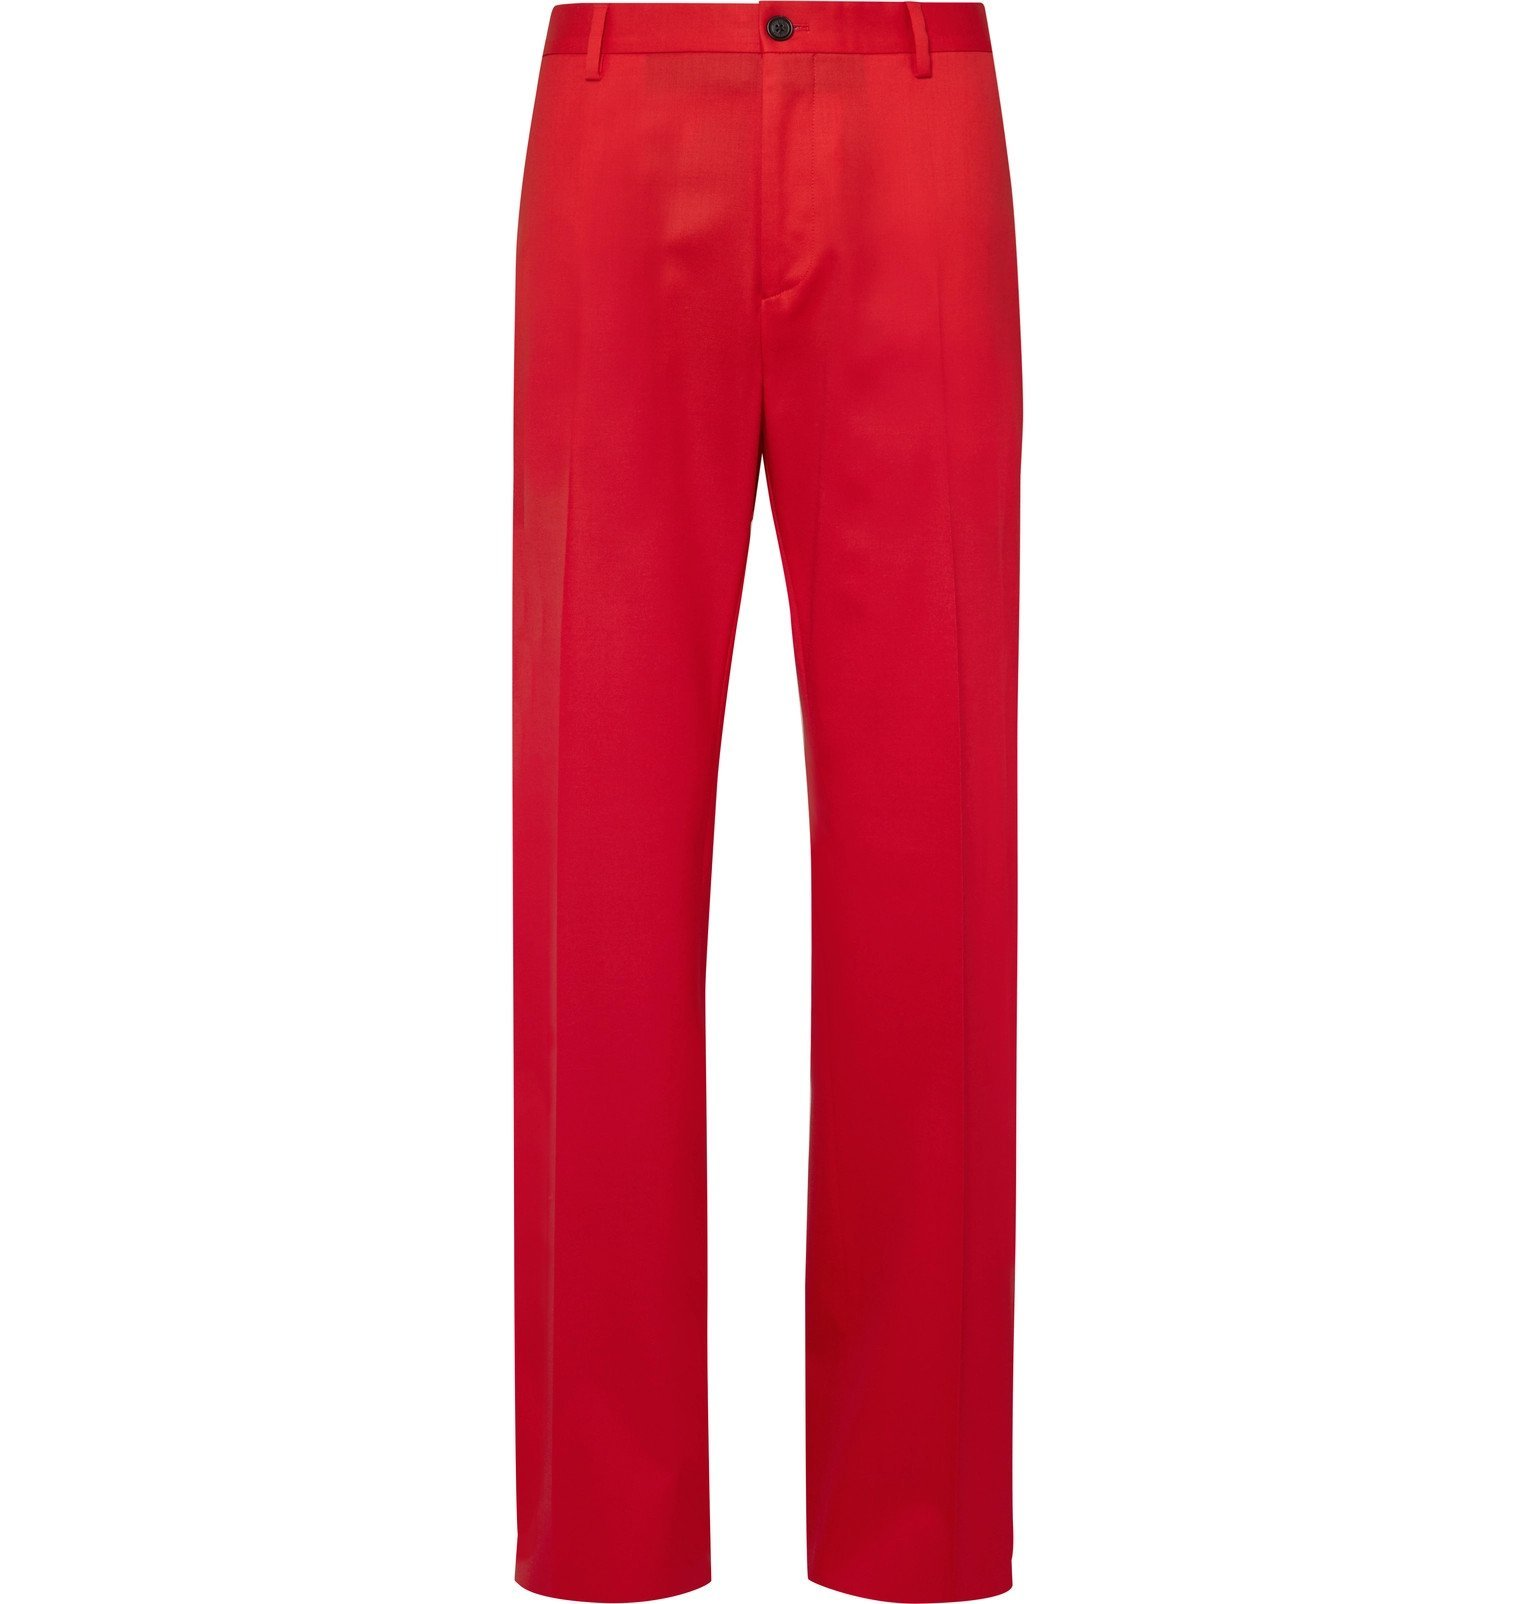 Versace - Red Stretch-Wool Twill Suit Trousers - Red